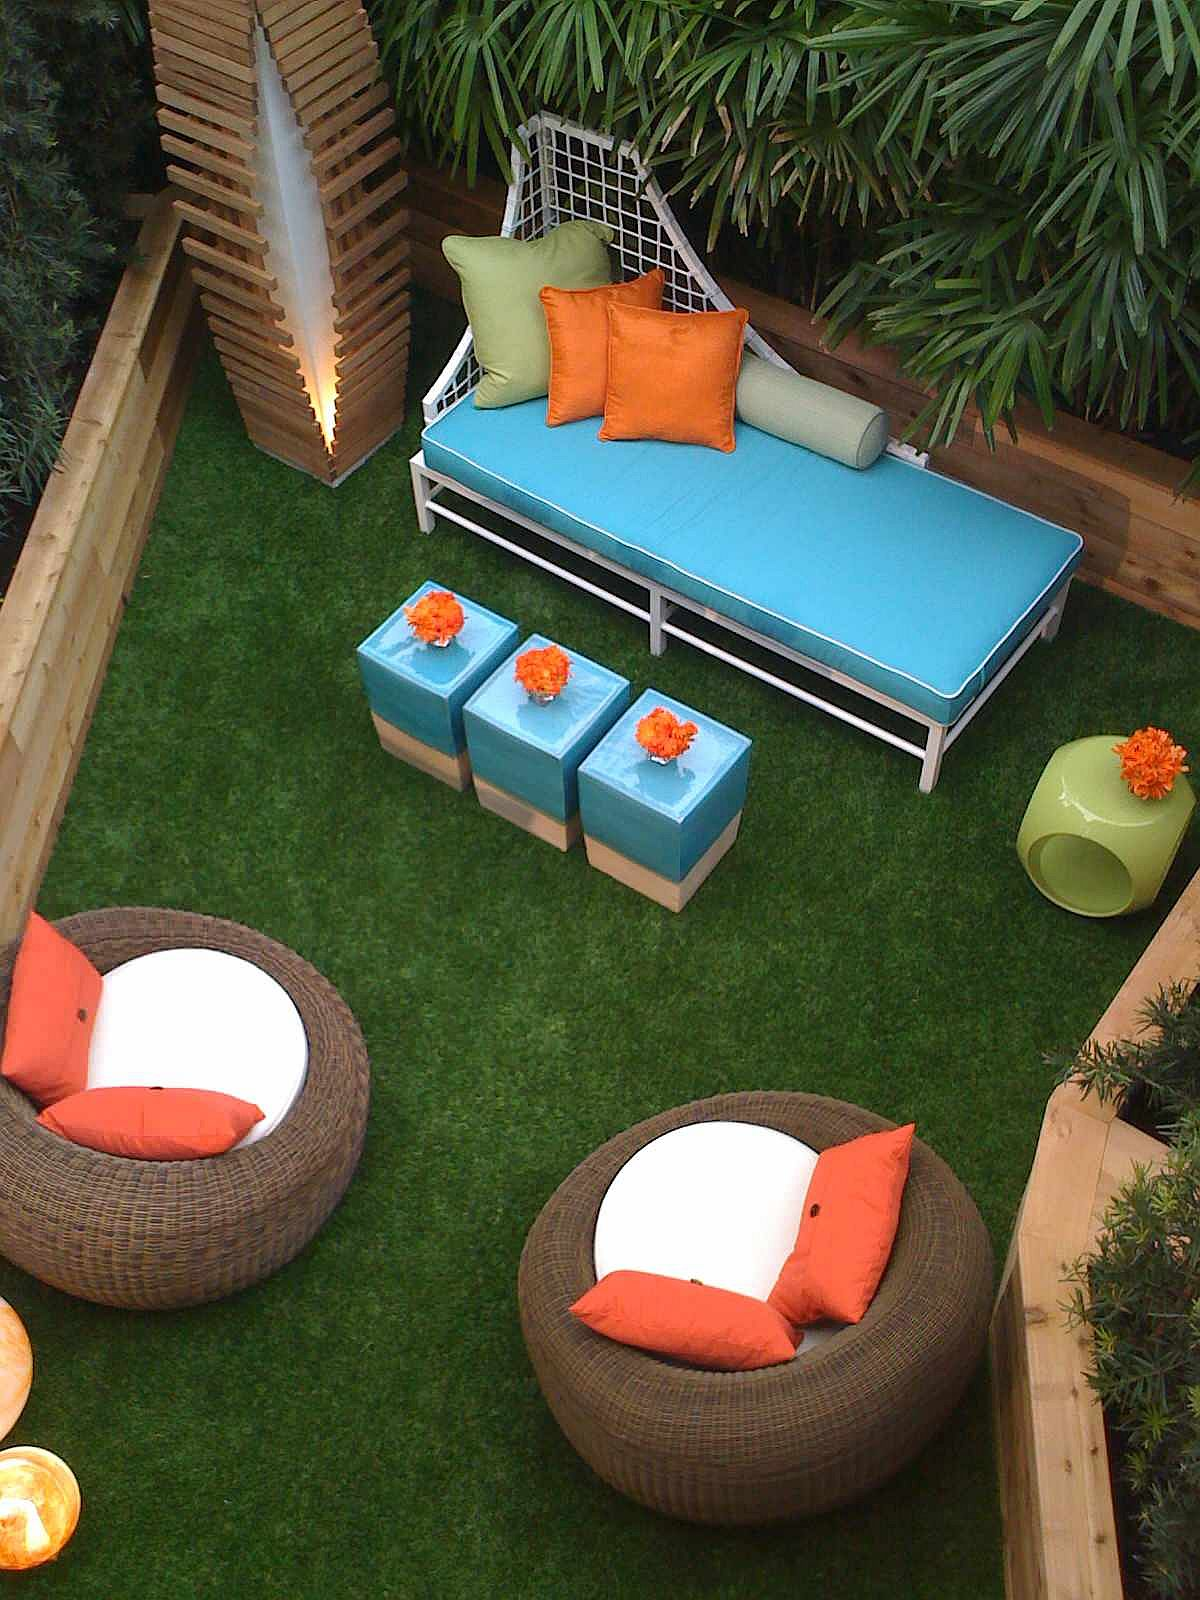 Brilliant blue seats along with curated orange accents for the small outdoor patio